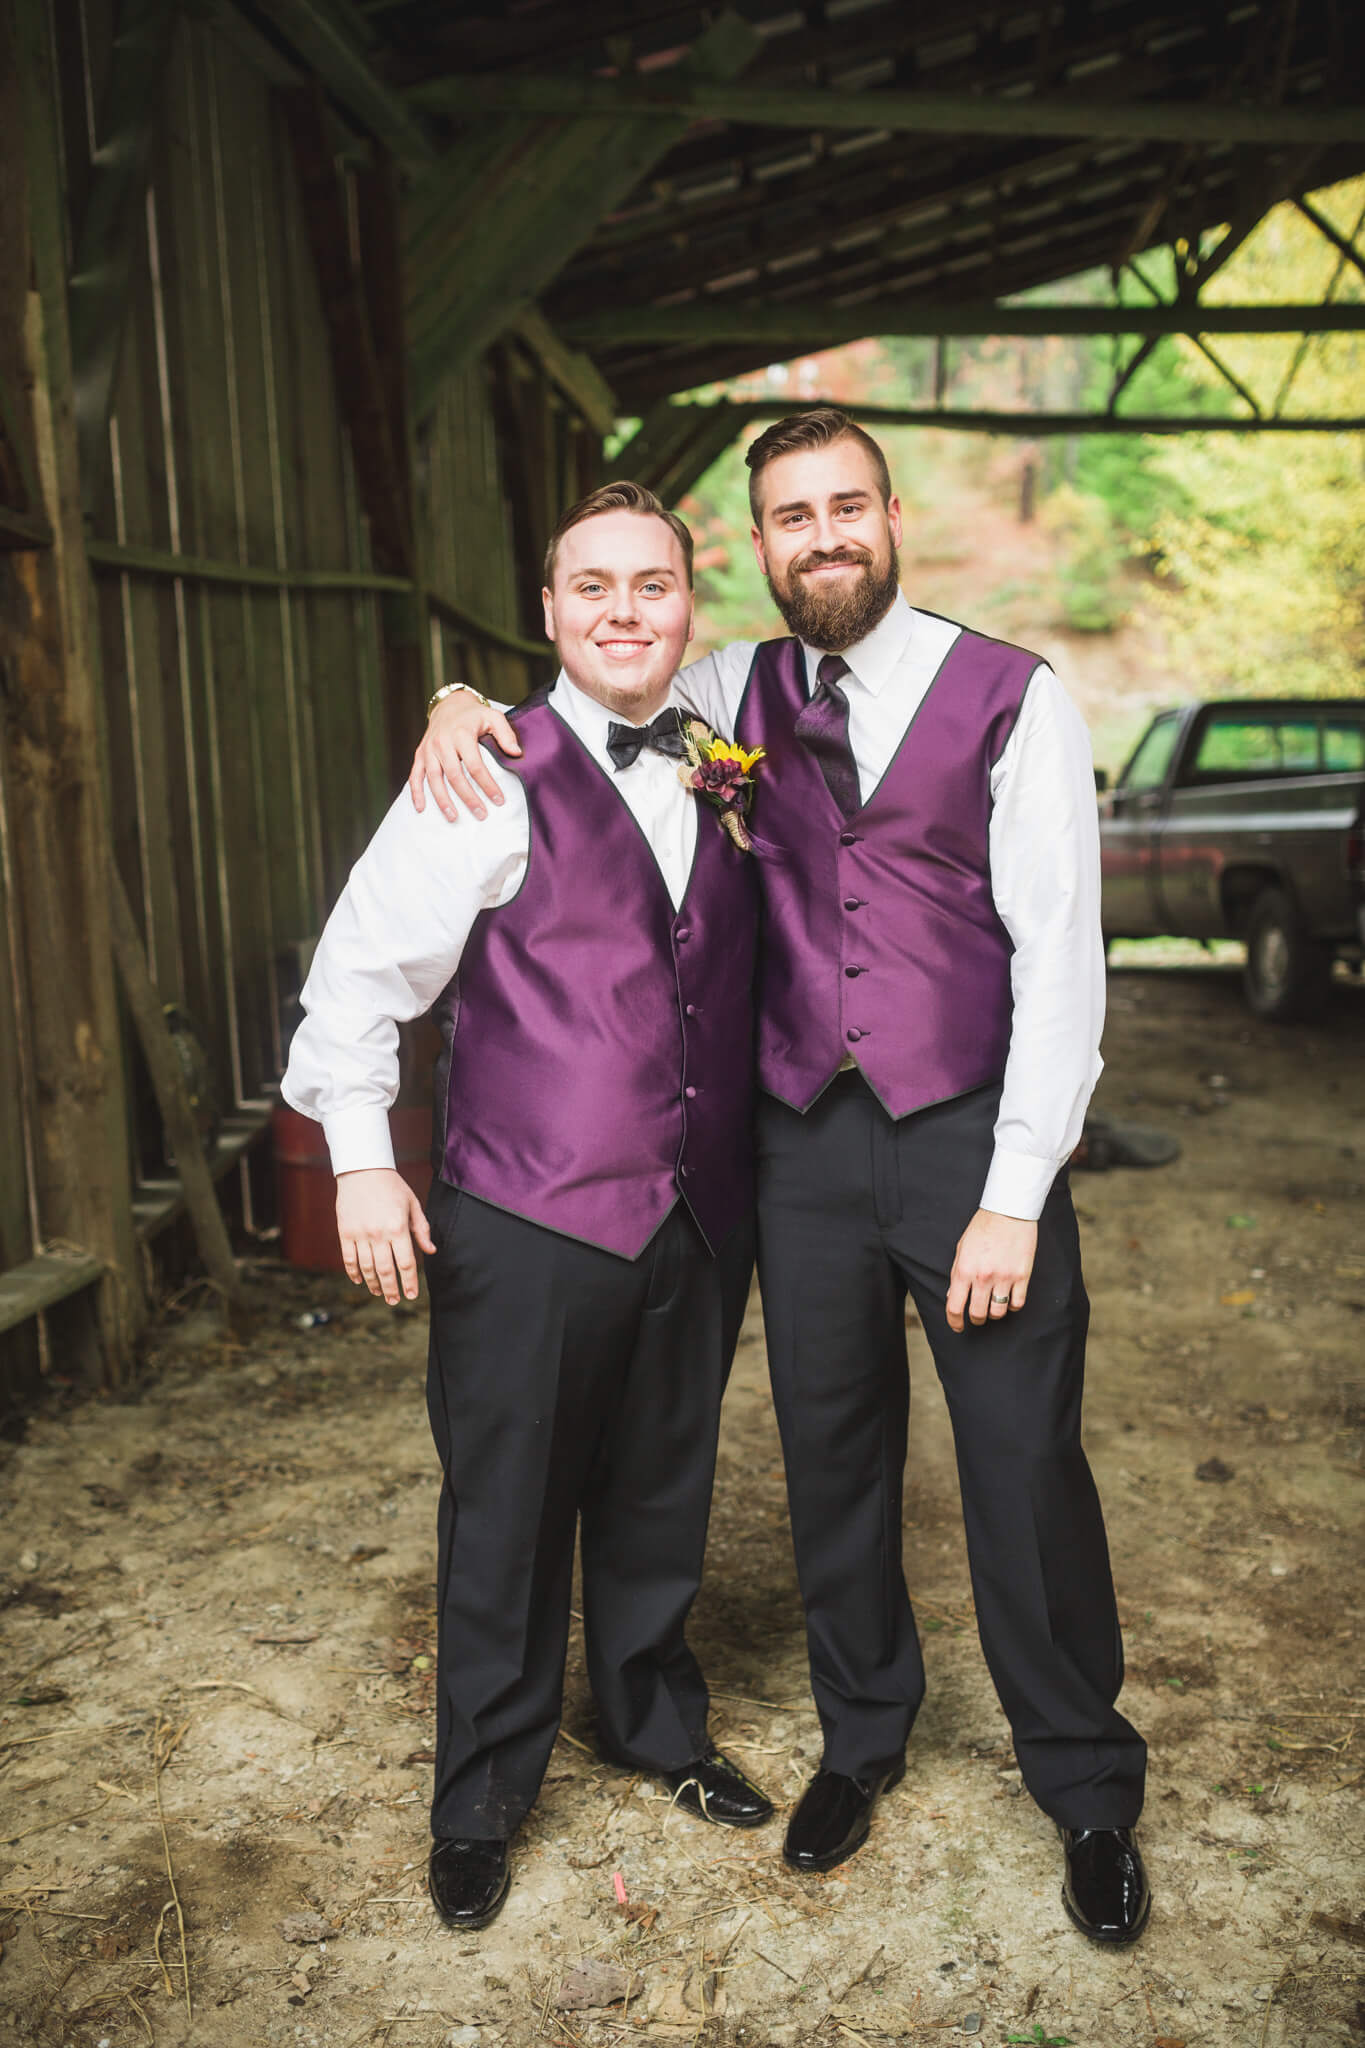 Mitcham's Barn Wedding-103.JPG